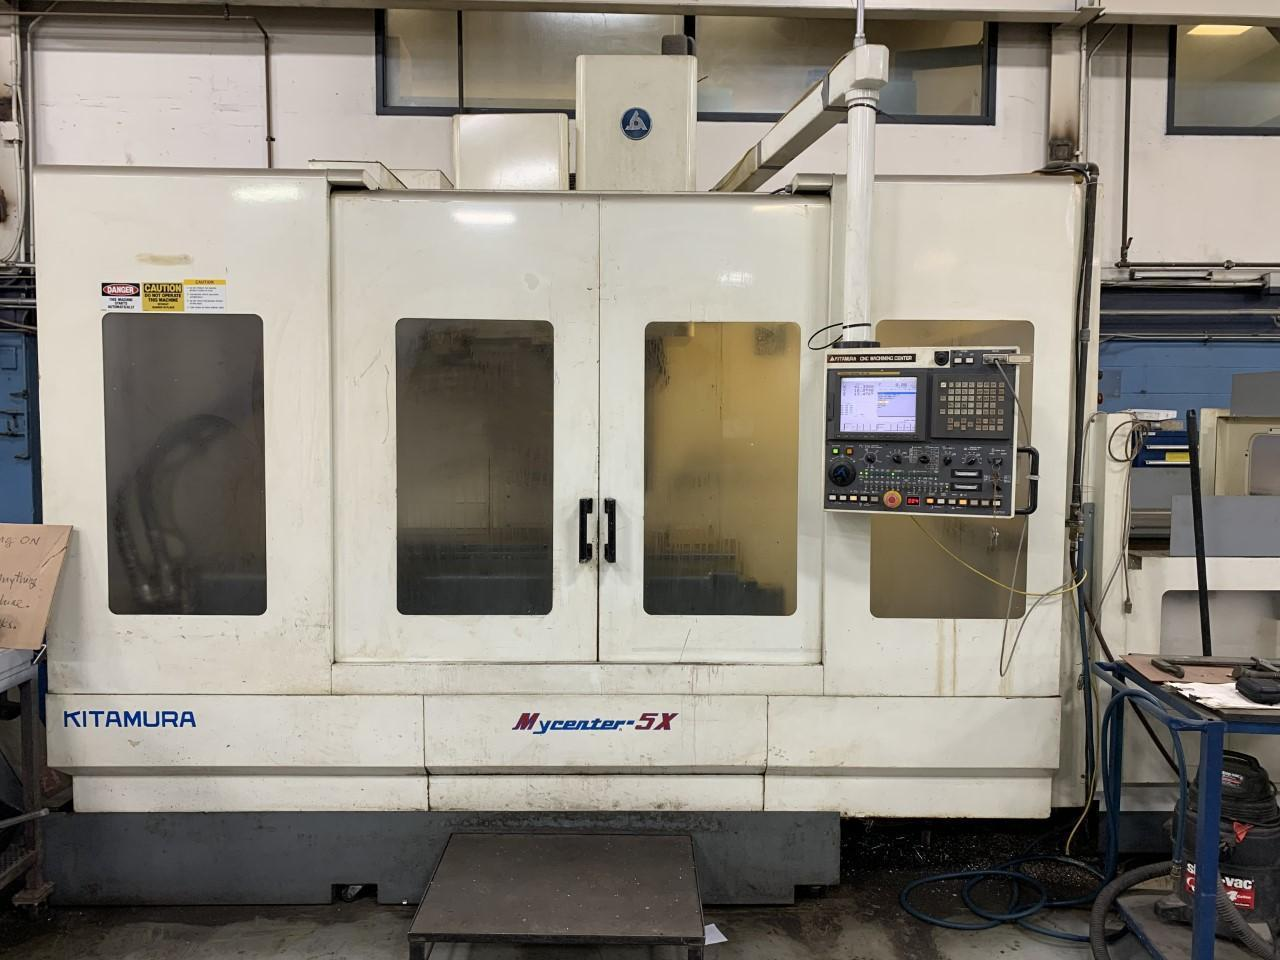 KITAMURA MYCENTER 5X VERTICAL MACHINING CENTER (VERY LOW HOURS, 2690 CUTTING HOURS)